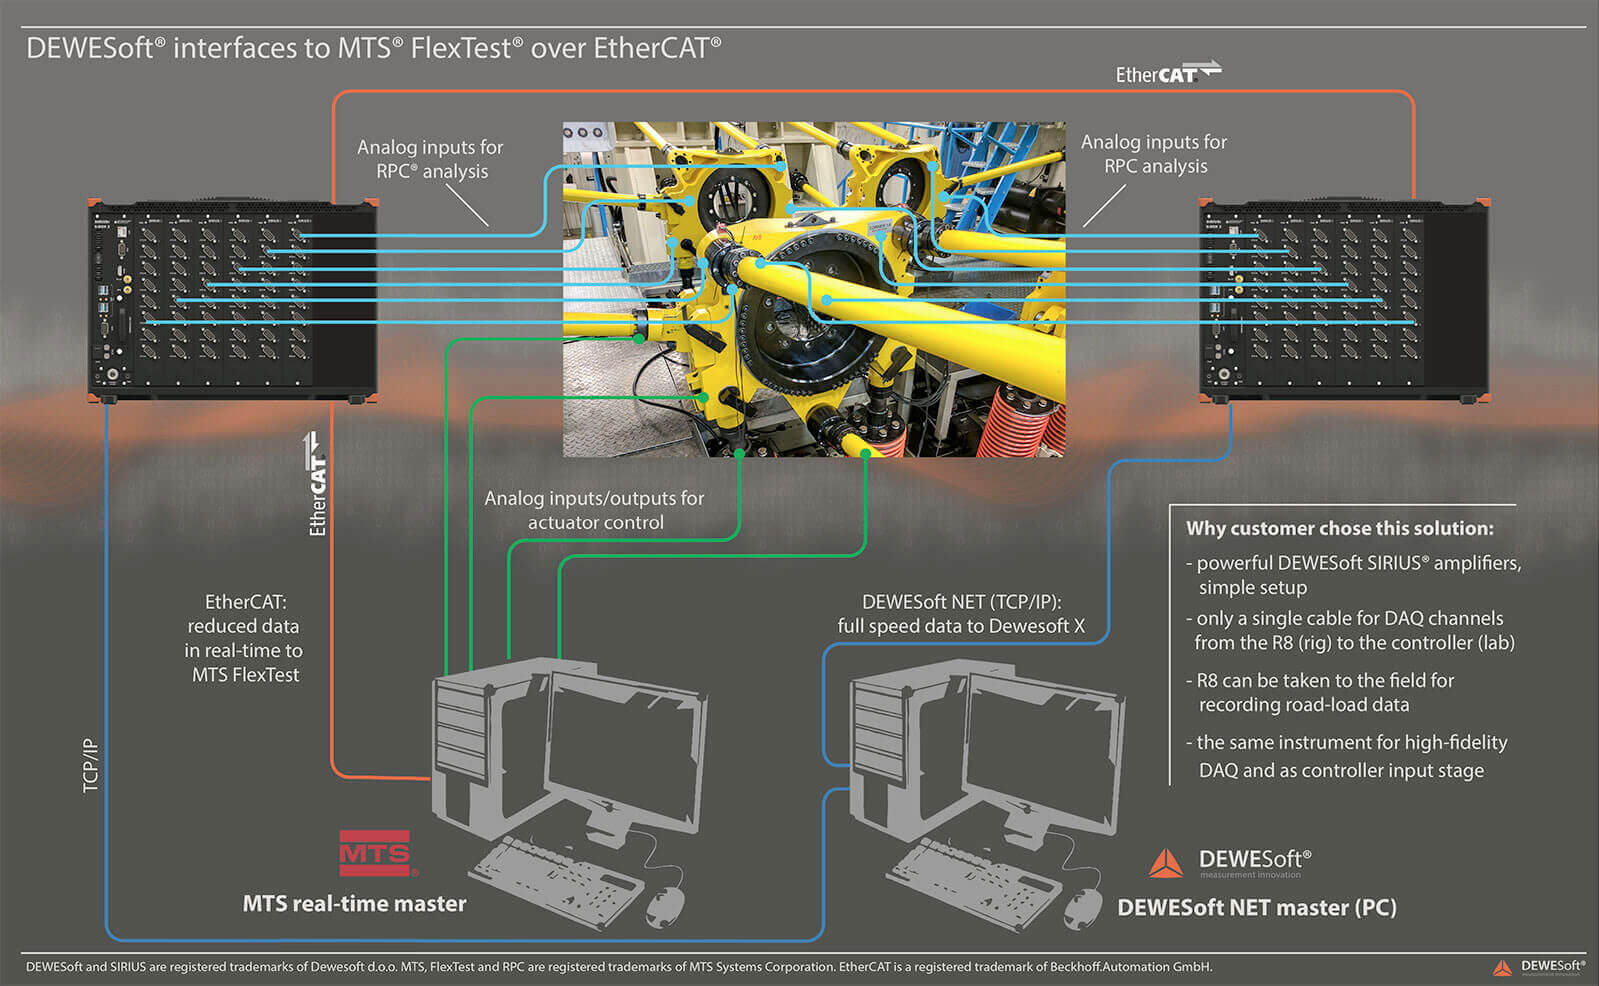 Implementation of Dewesoft R8rt systems with an MTS real-time Master